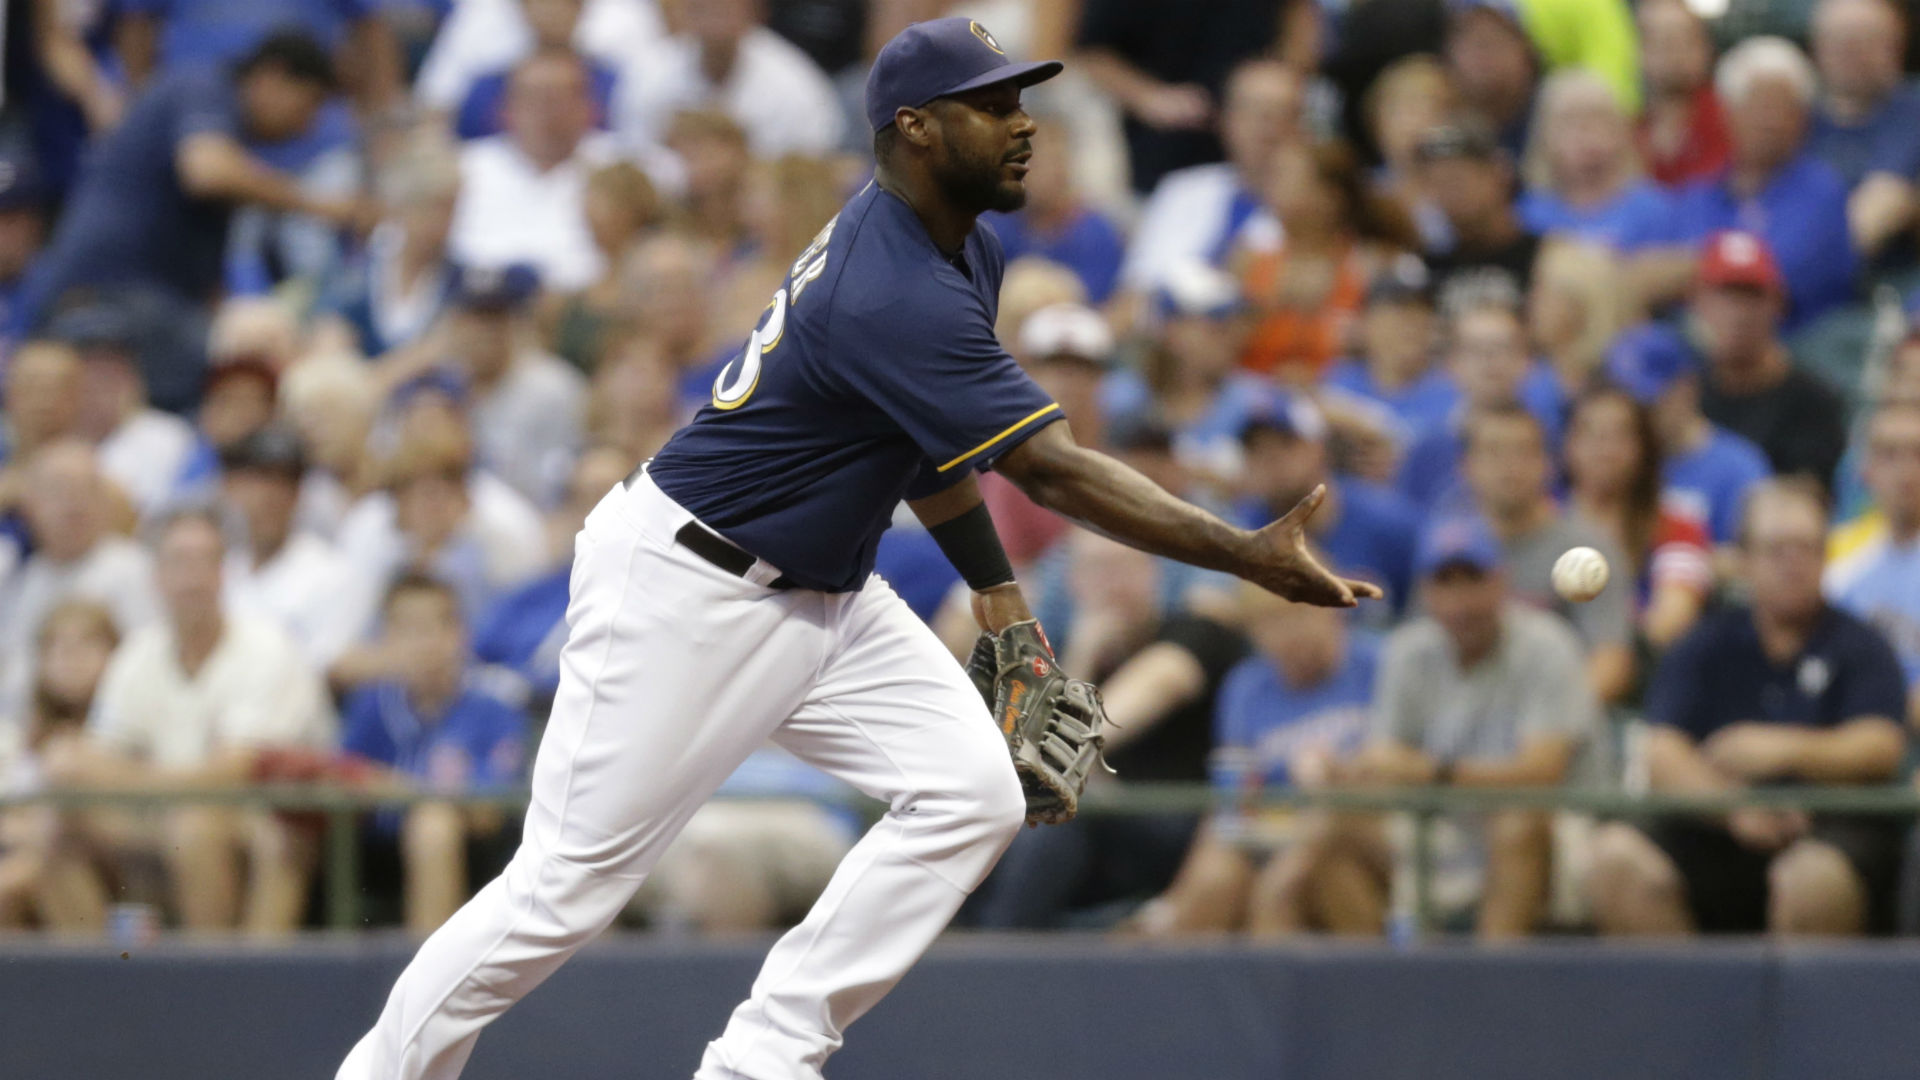 New York Yankees Close to Signing Chris Carter, Rays Lose Out